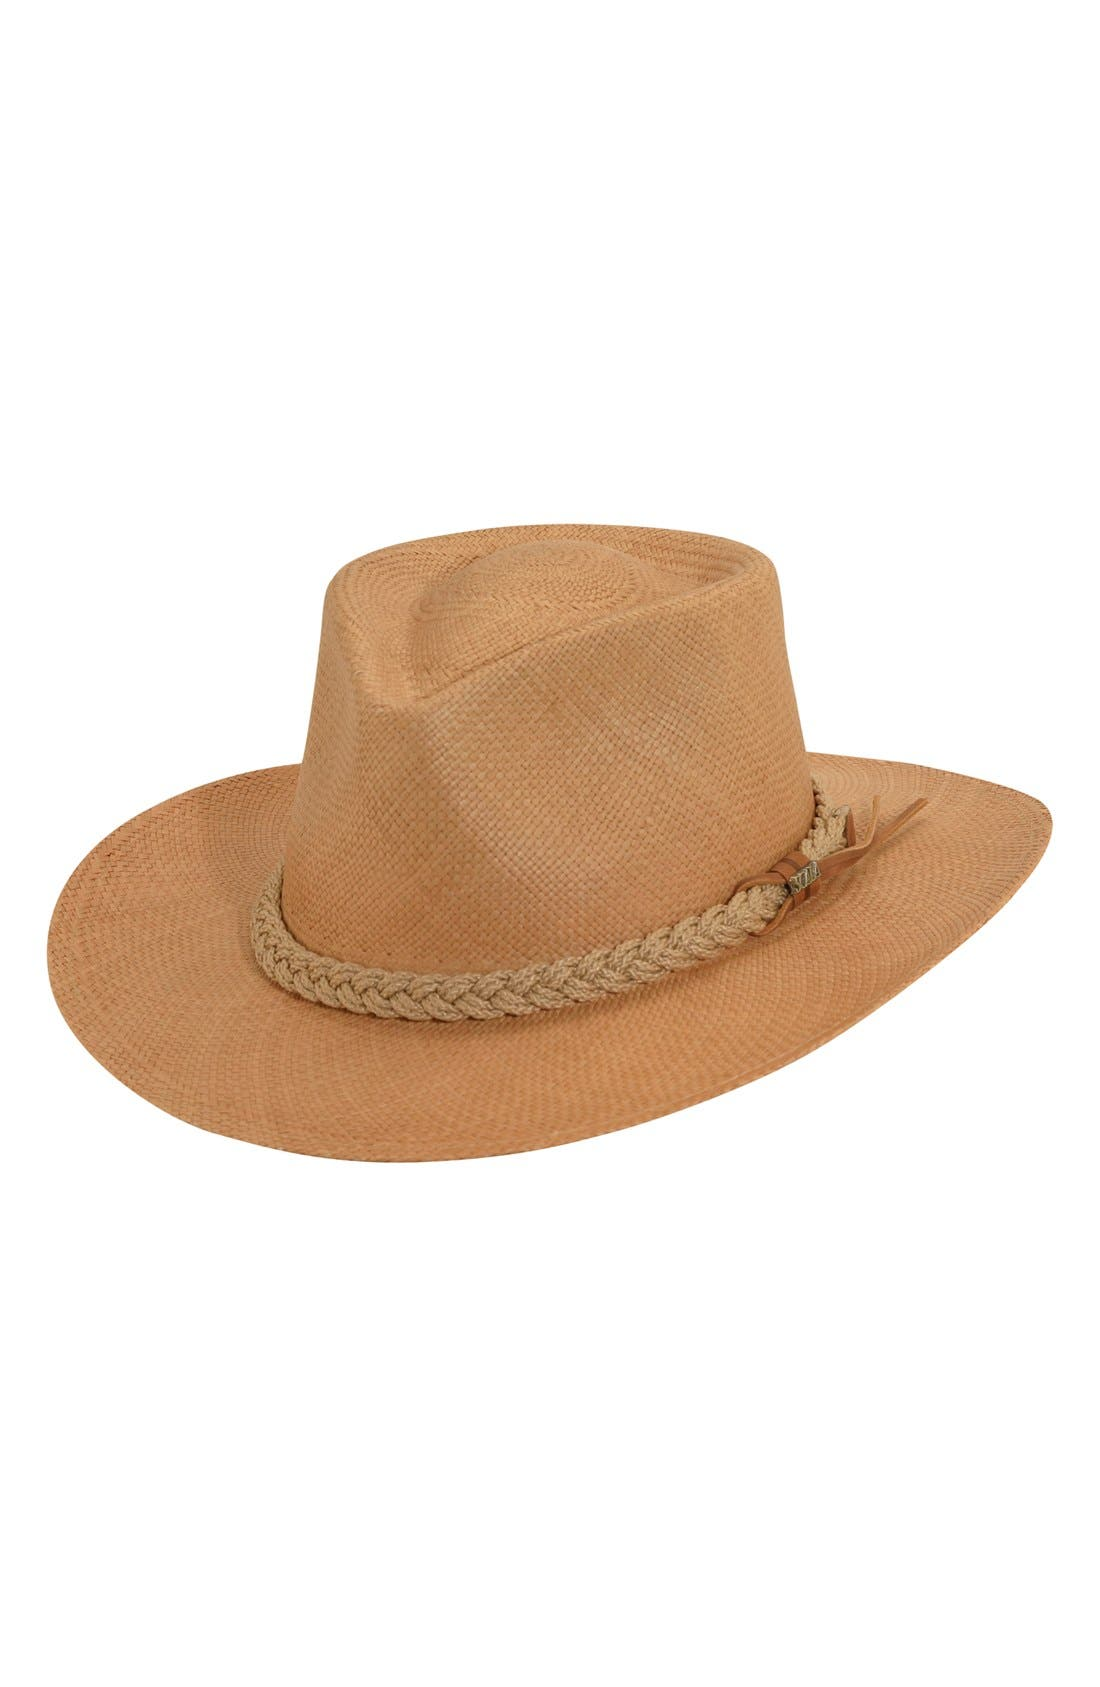 Panama Straw Outback Hat,                             Main thumbnail 1, color,                             PUTTY